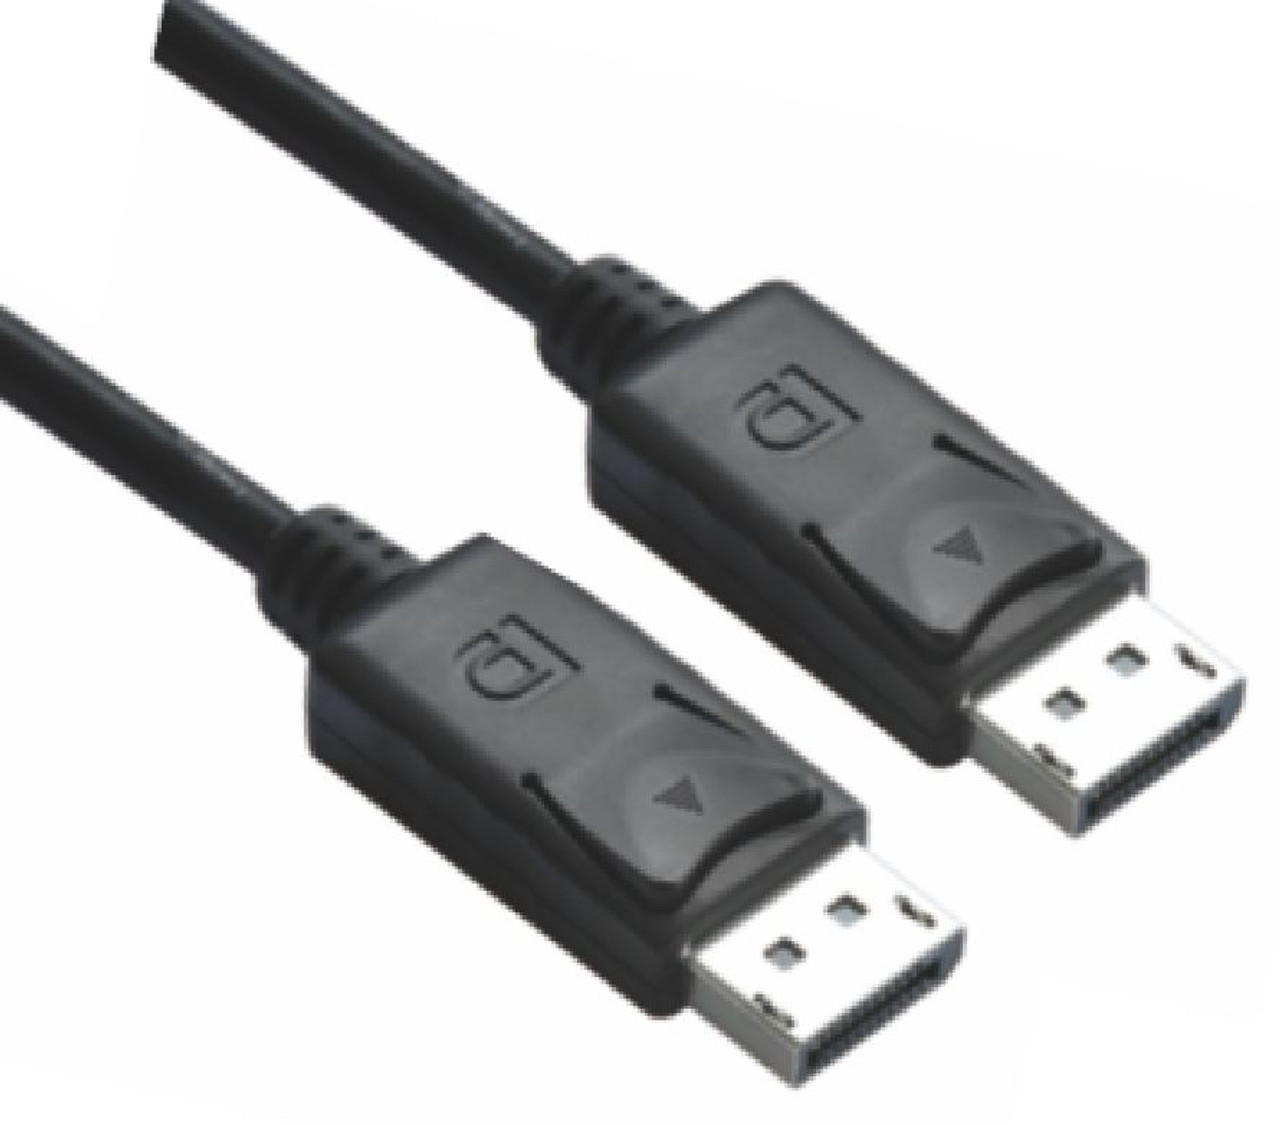 Product image for DisplayPort DP Cable 1m - 20 pins Male to Male 1.2V  Nickle Plated   CX Computer Superstore